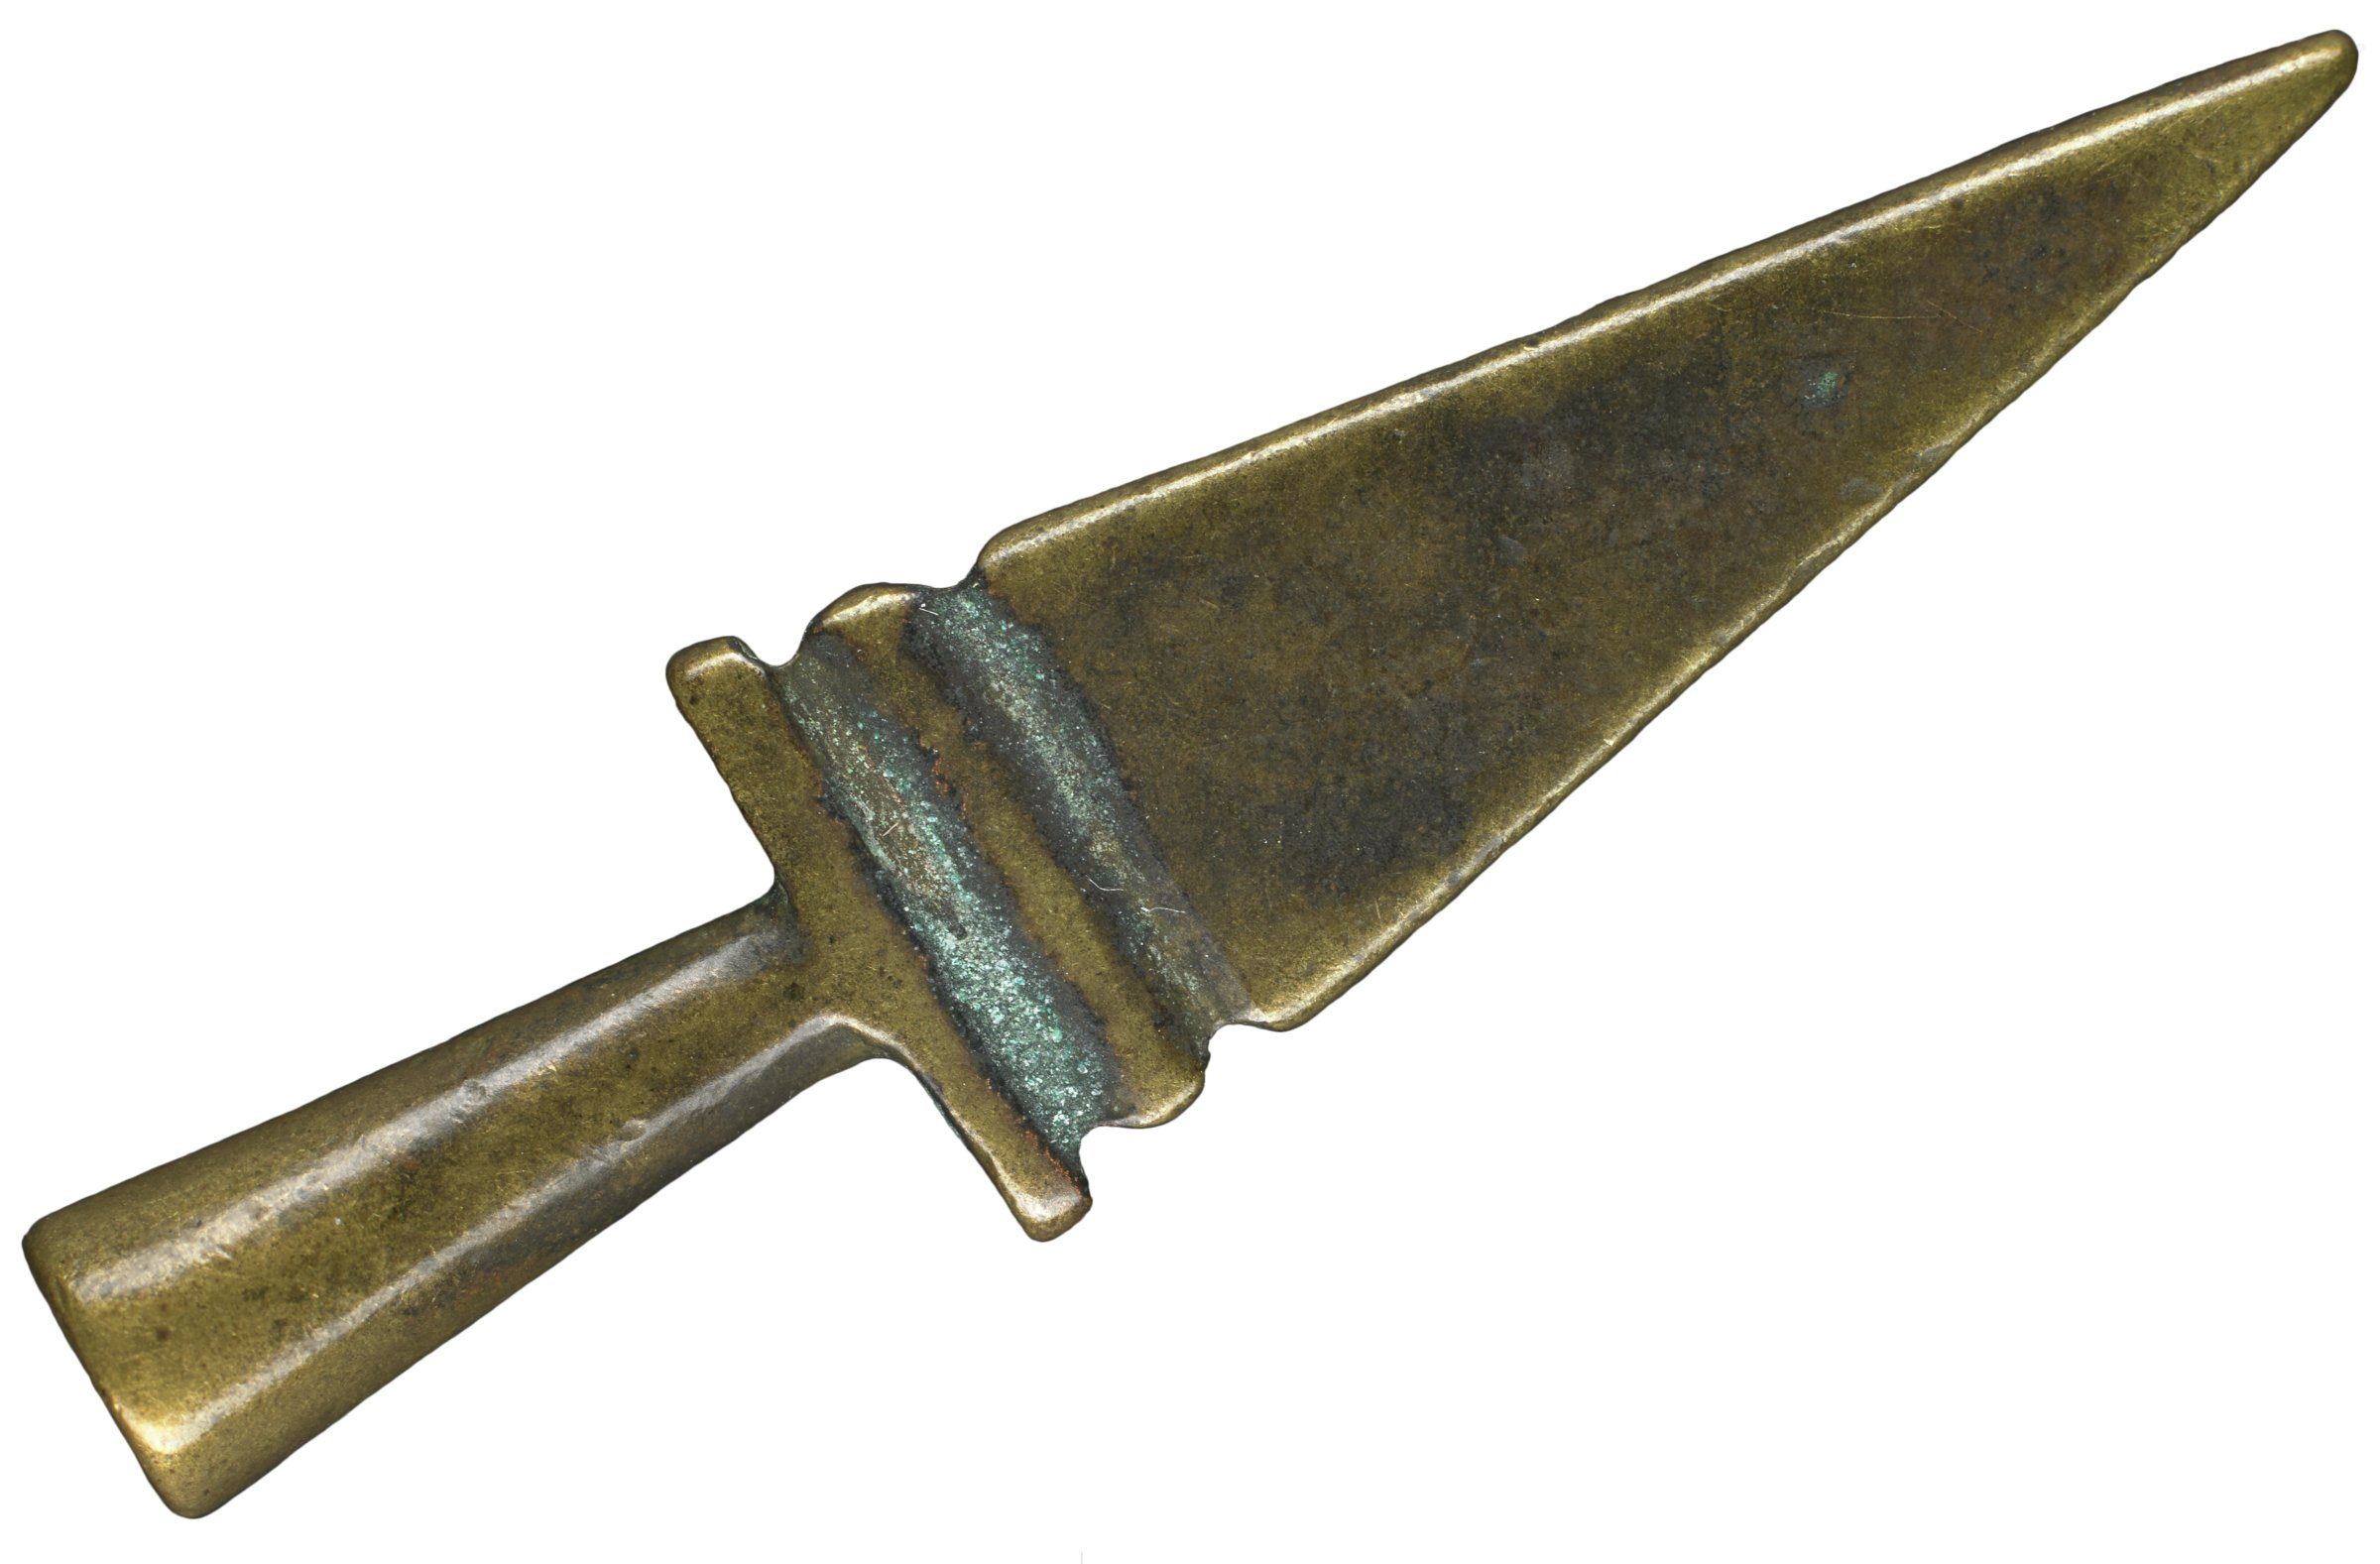 Gold Weight in the Form of a Knife, Asante people or, Baule people, Akan group, Ghana or, Côte d'Ivoire, African, brass